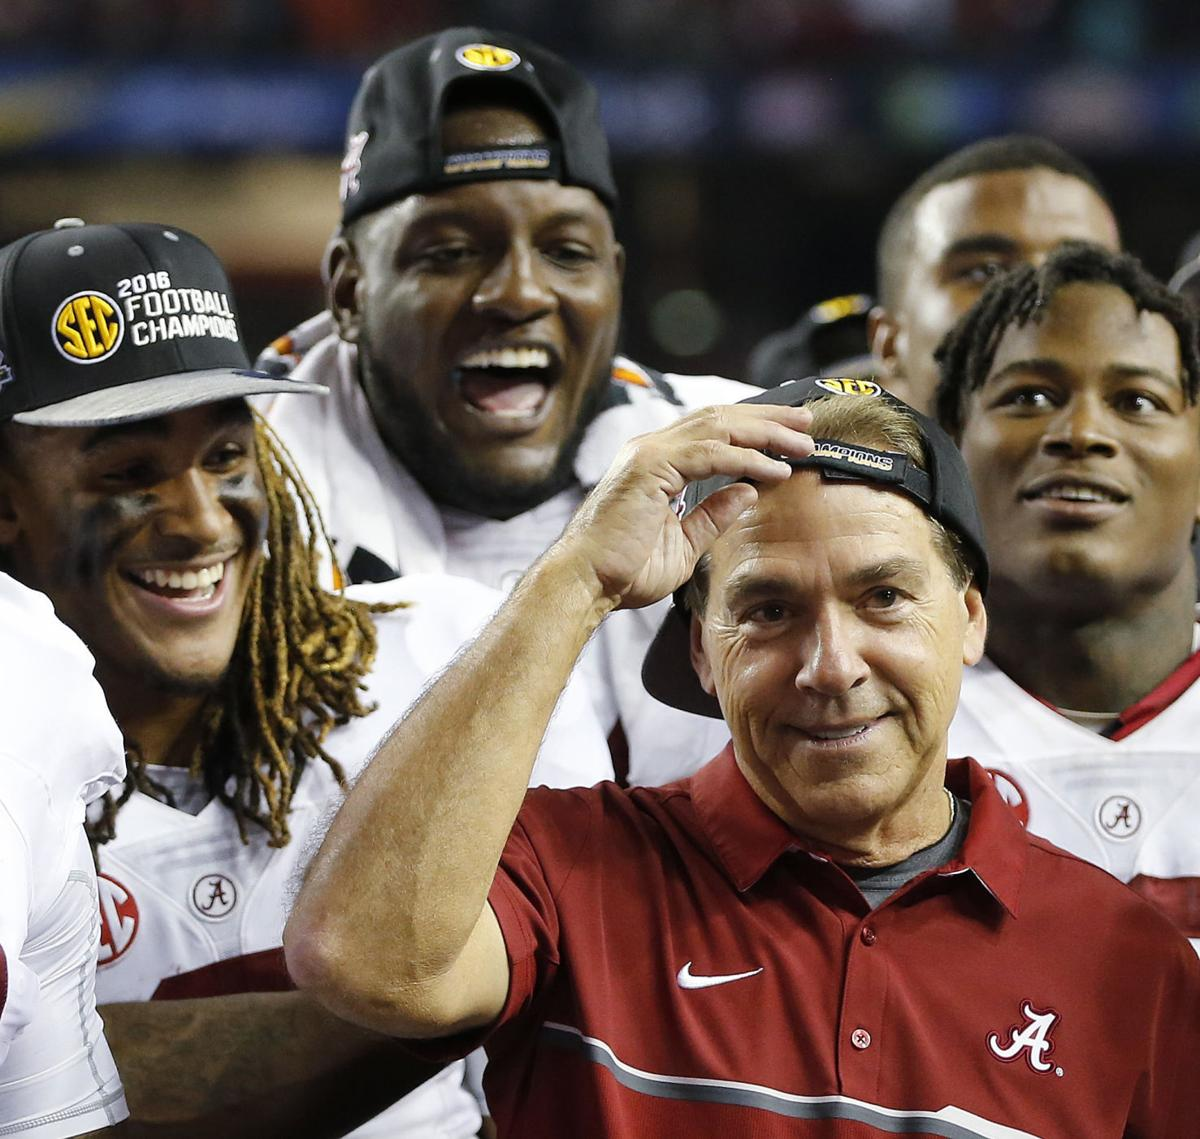 Sec Preview Alabama Reloaded For Another Playoff Run Mizzou